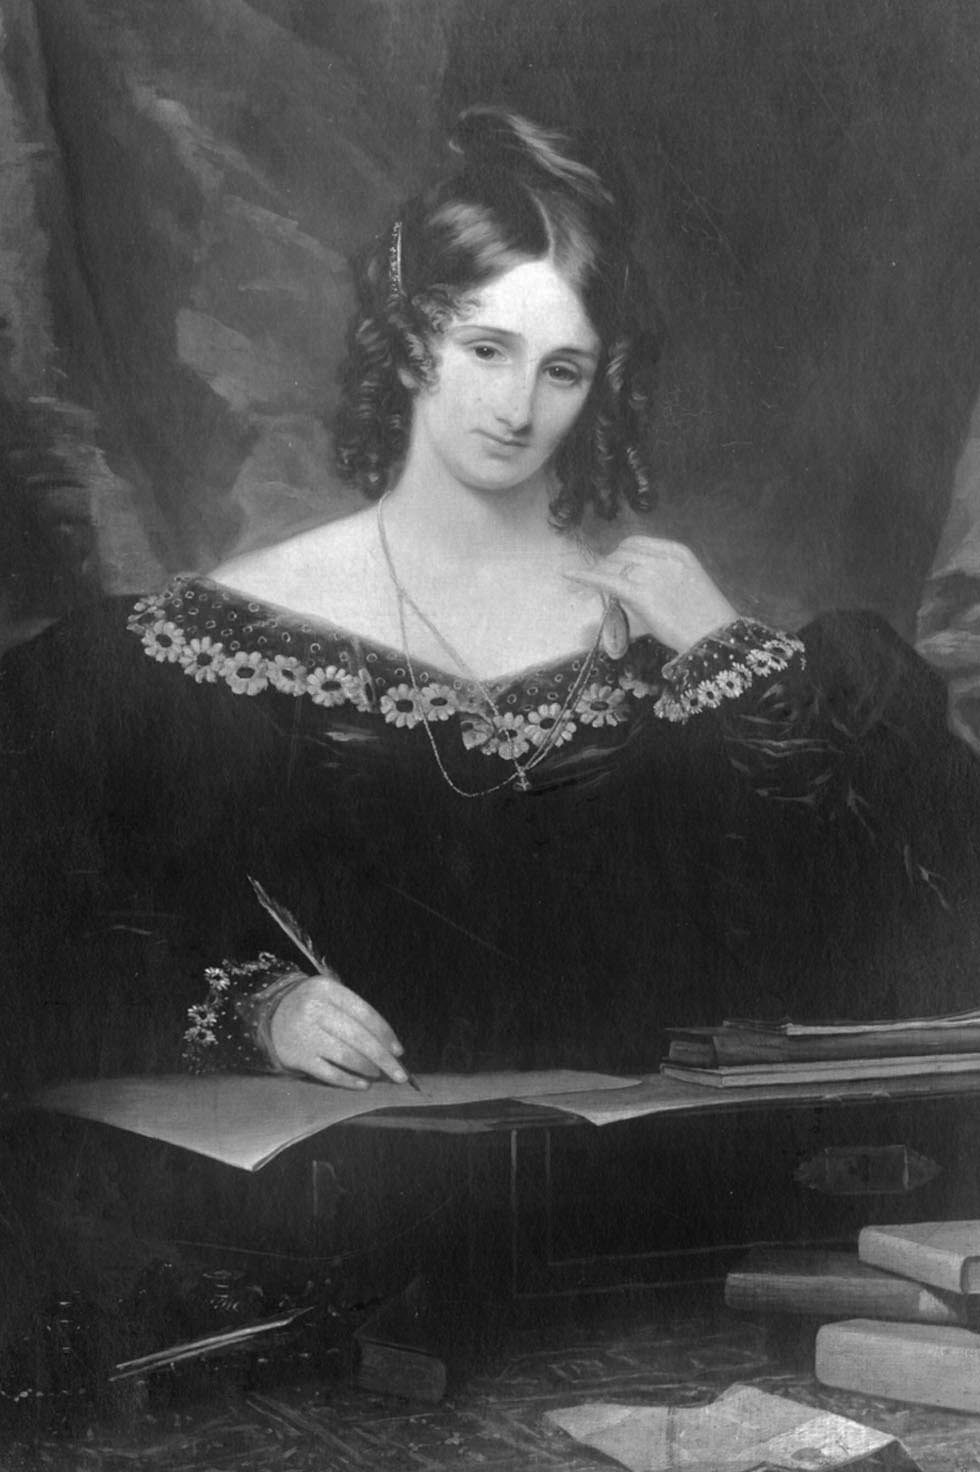 Mary Shelley August 30, 1797 – February 1, 1851